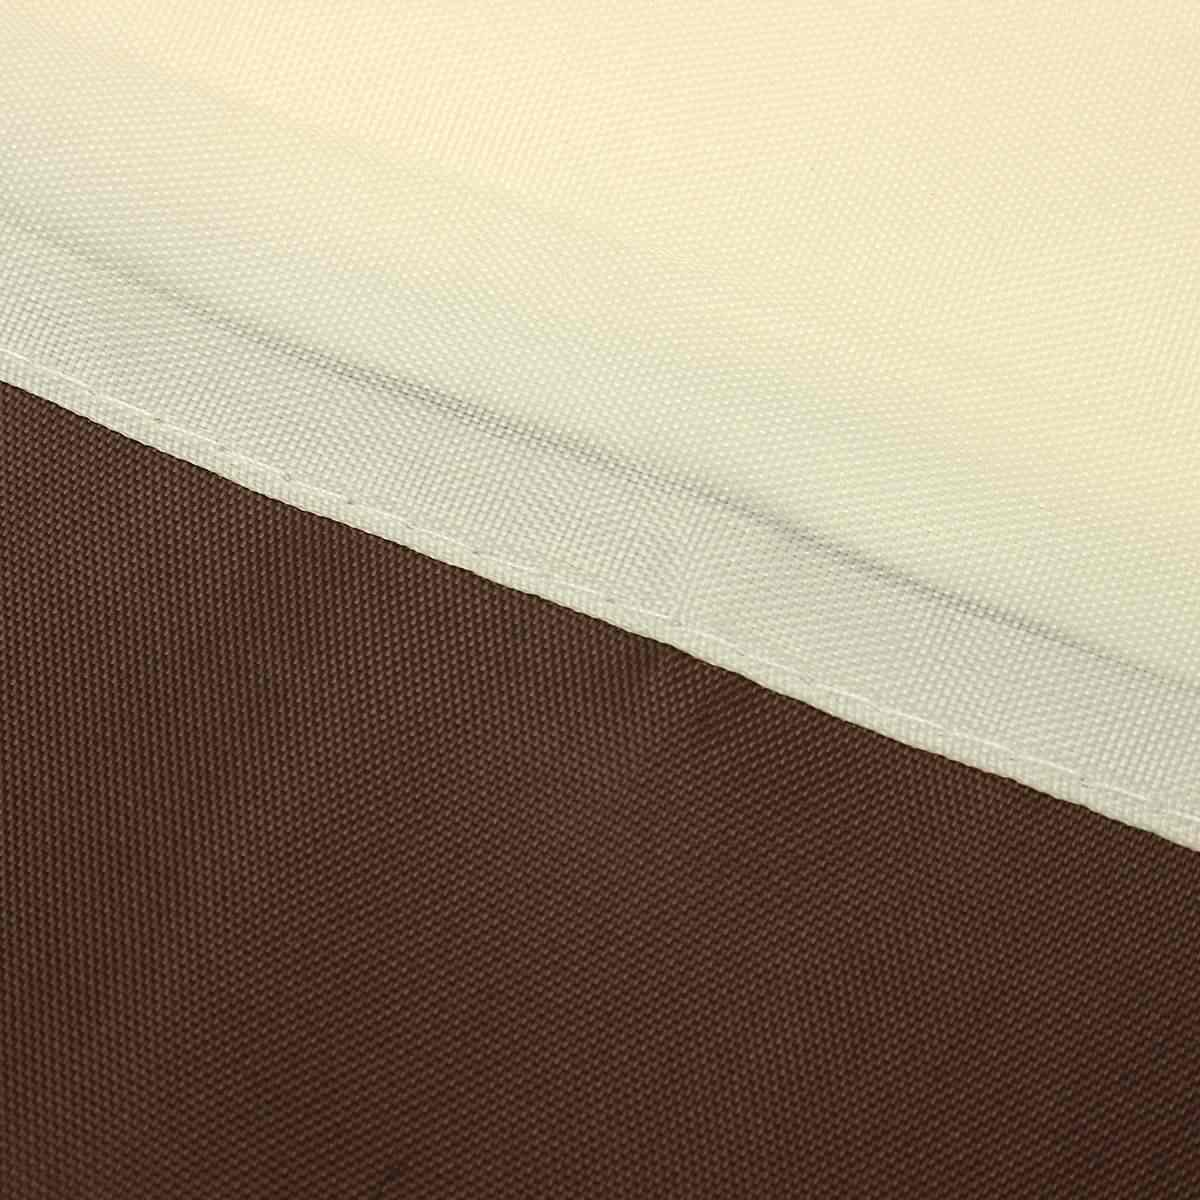 Picture of: Patio Chair Cover Polyester Waterproof Single High Back Chair Covers Outdoor Yard Furniture Protective Cover Textiles Supplies Chair Cover Polyester Chair Covercover Chair Aliexpress